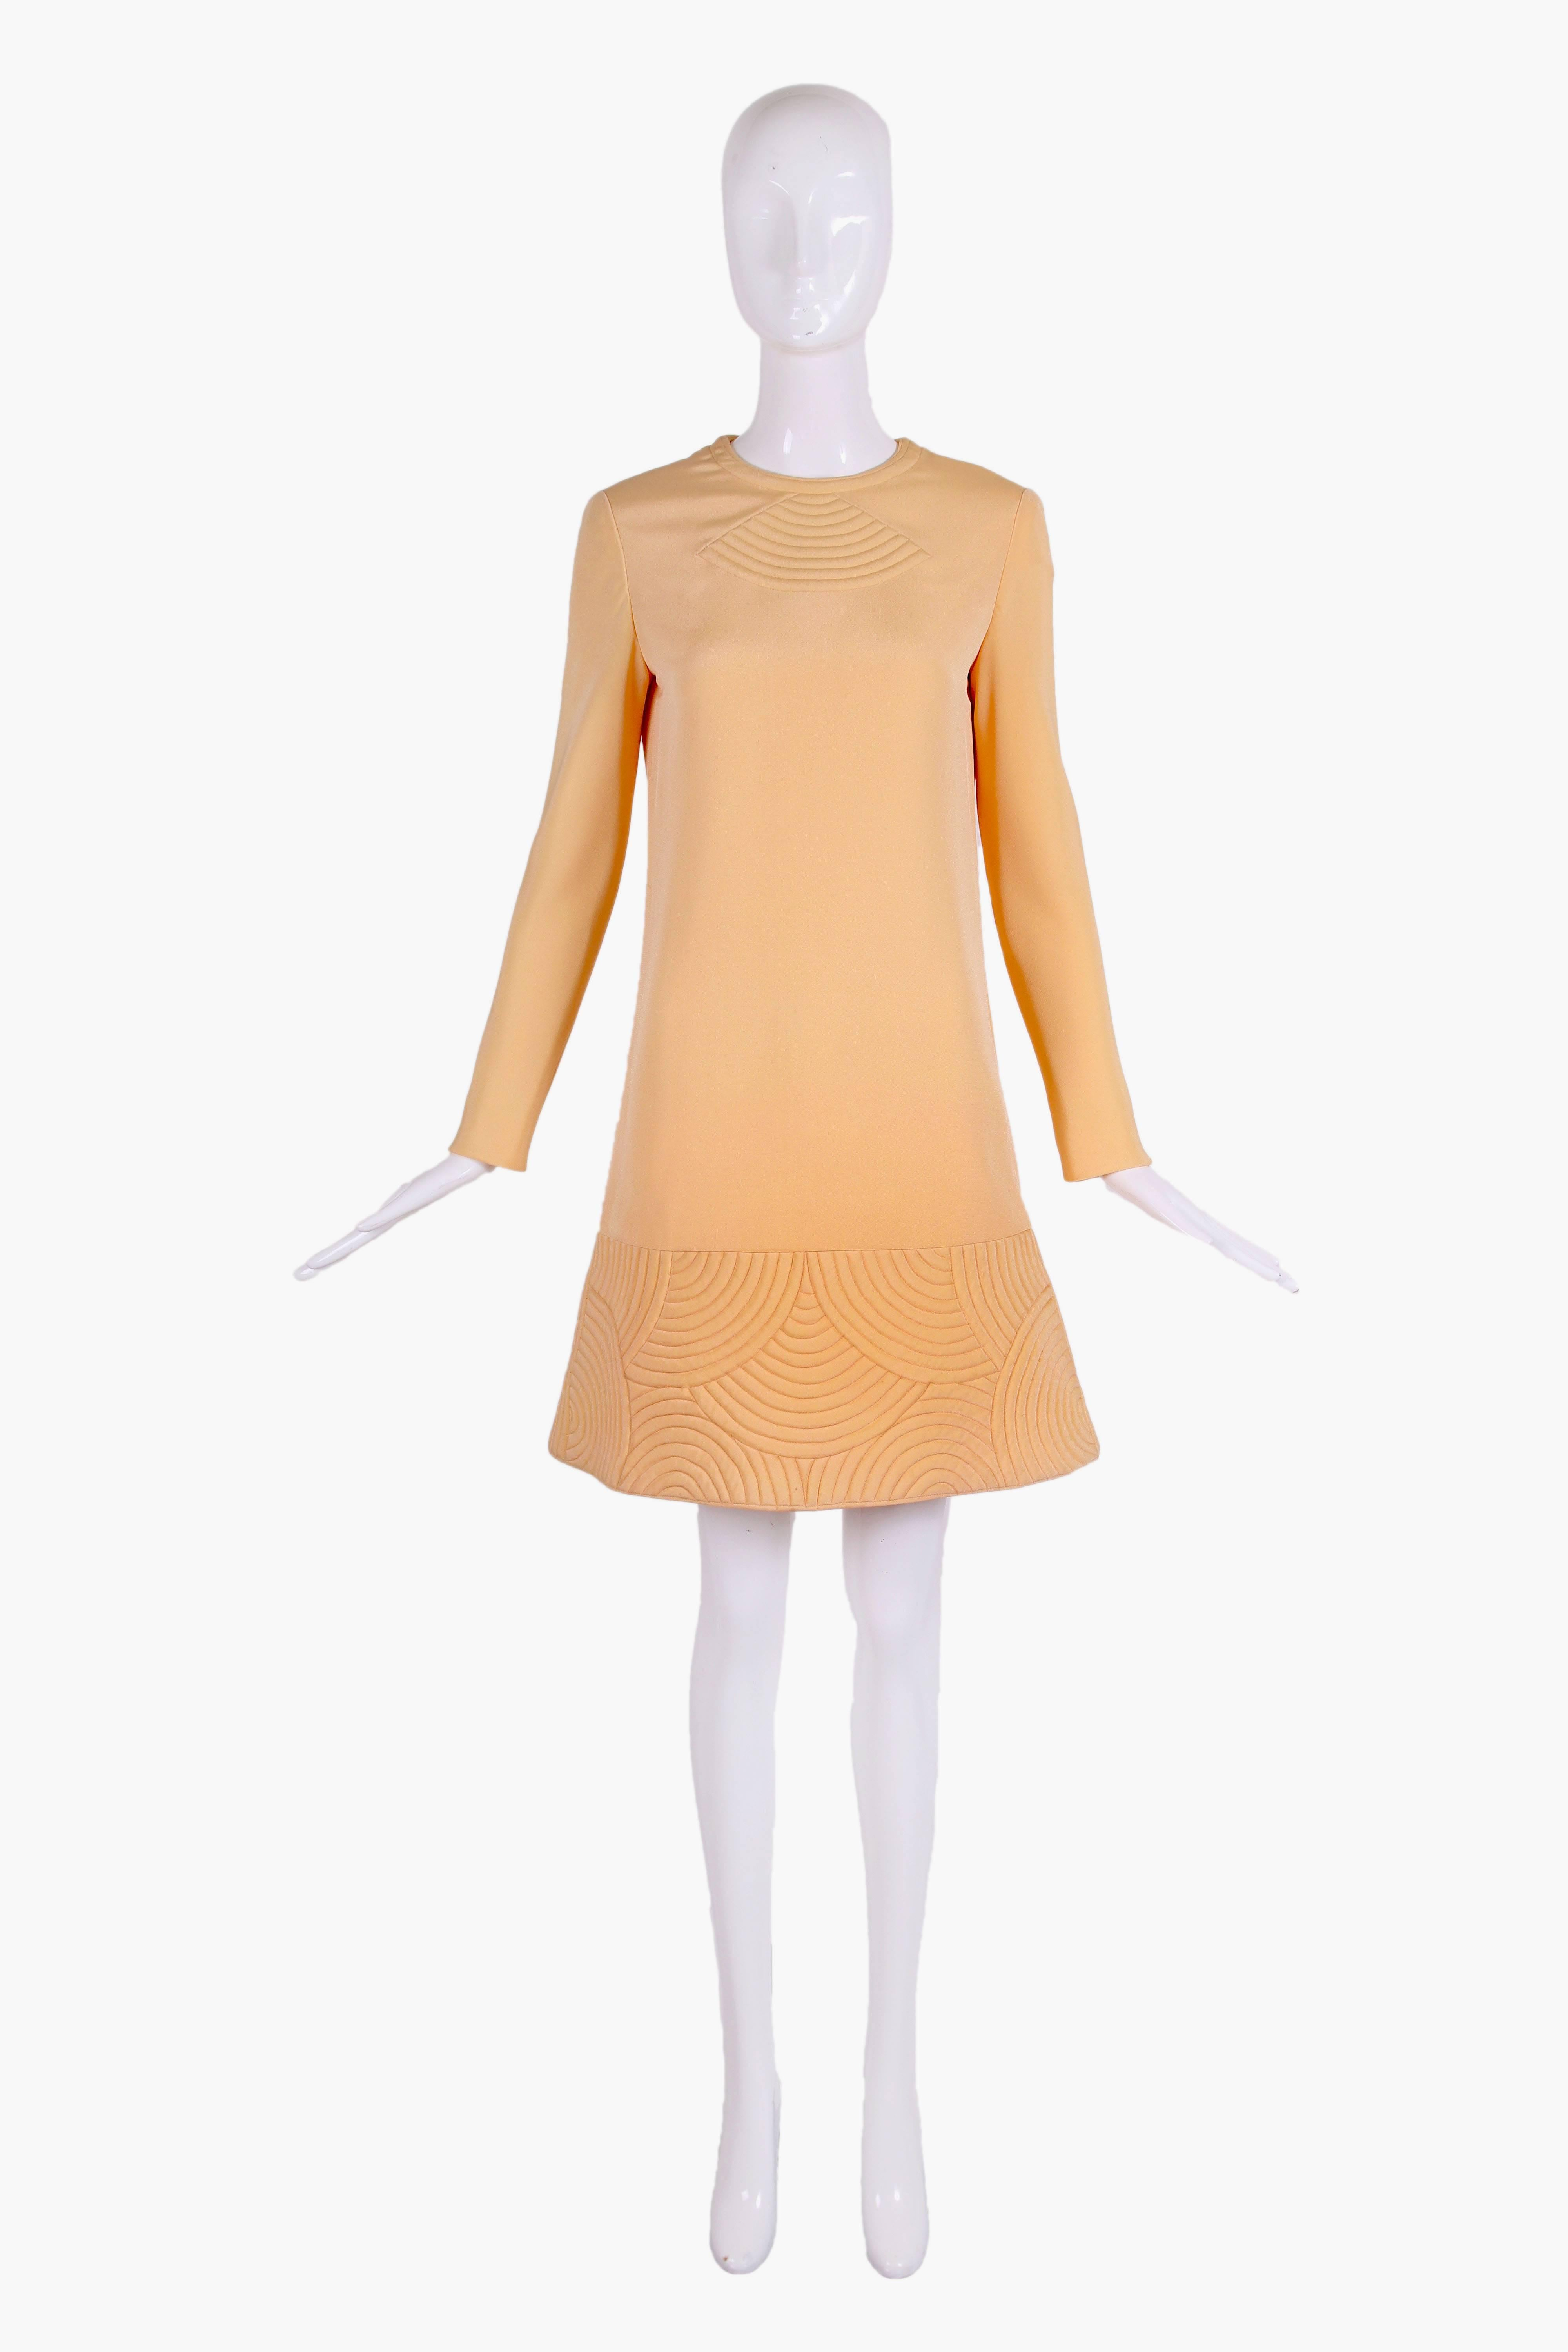 a27c549c46d6 Pierre Cardin Mod Space Age Mini Dress with Geometric Design, 1970s For  Sale at 1stdibs